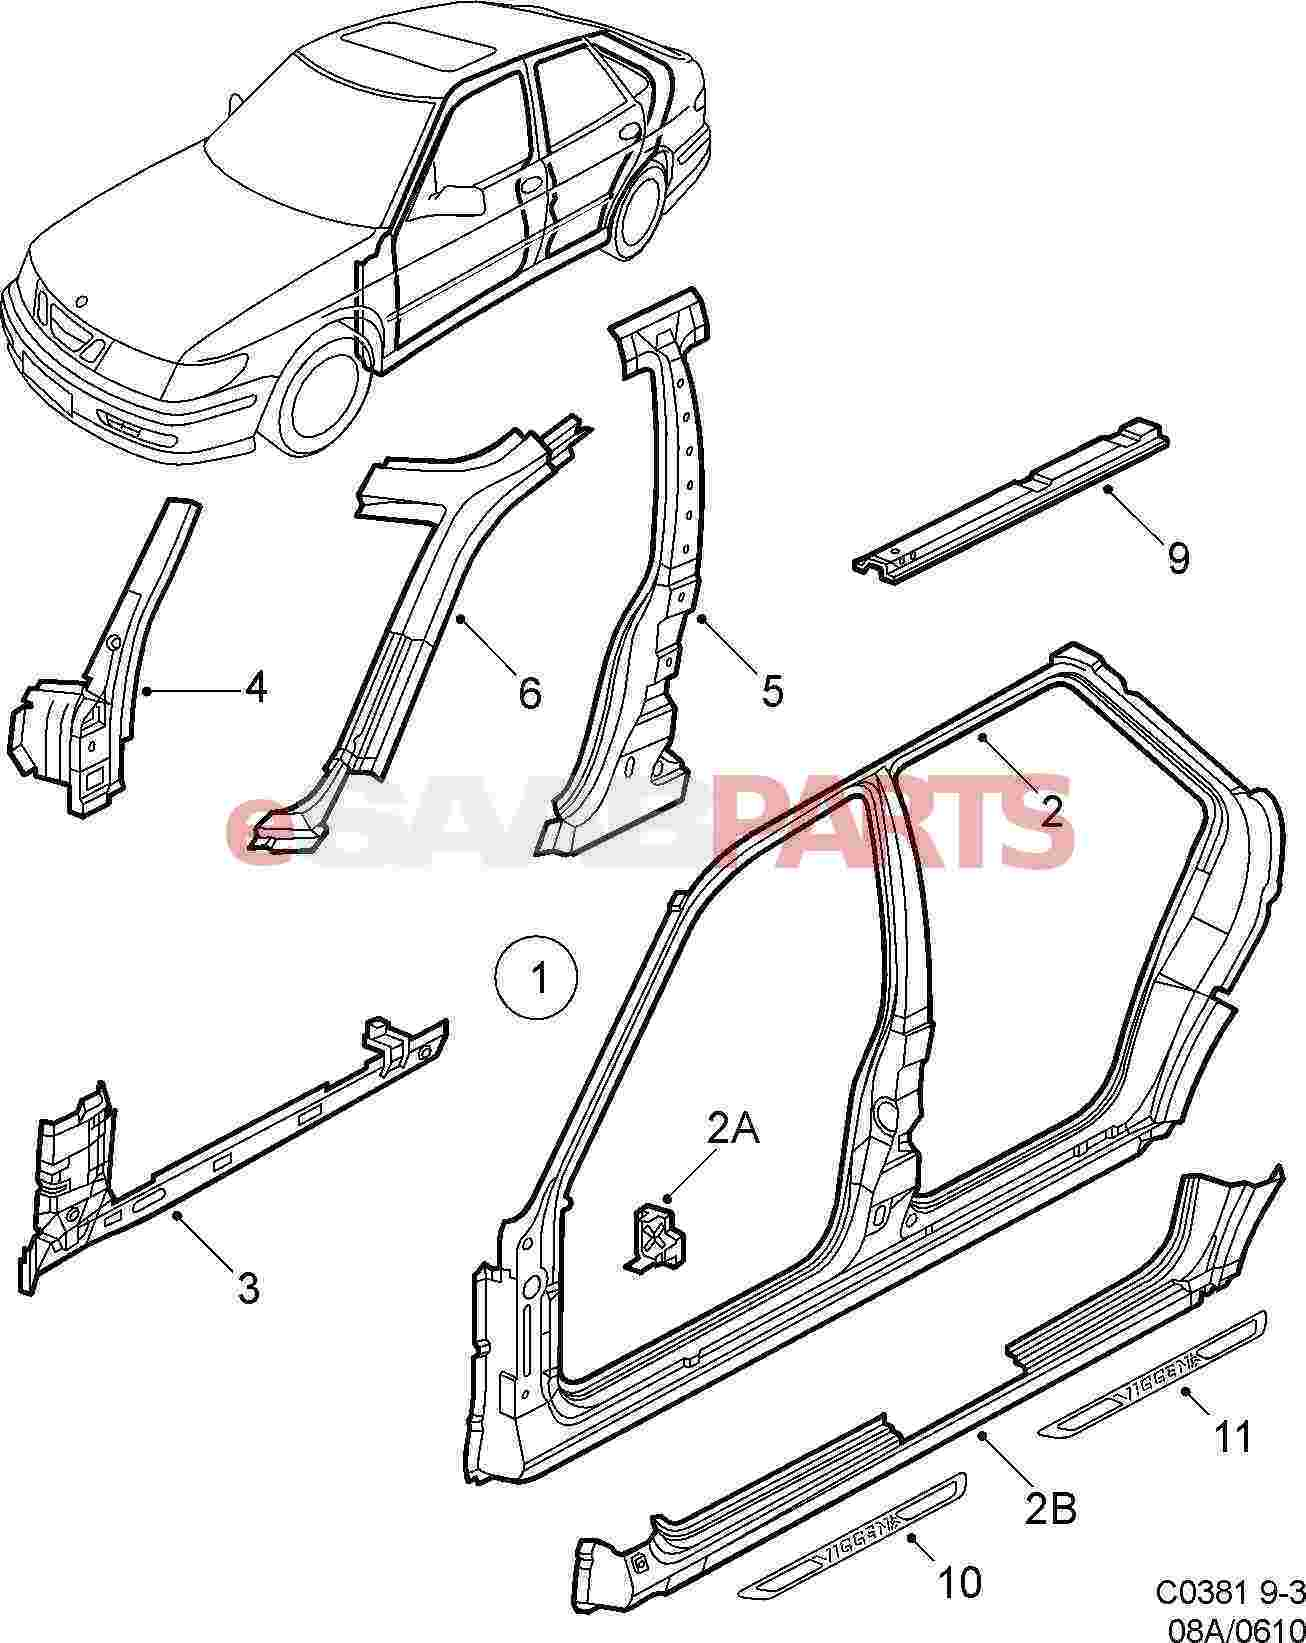 Auto Interior Diagram : Interior car door parts m